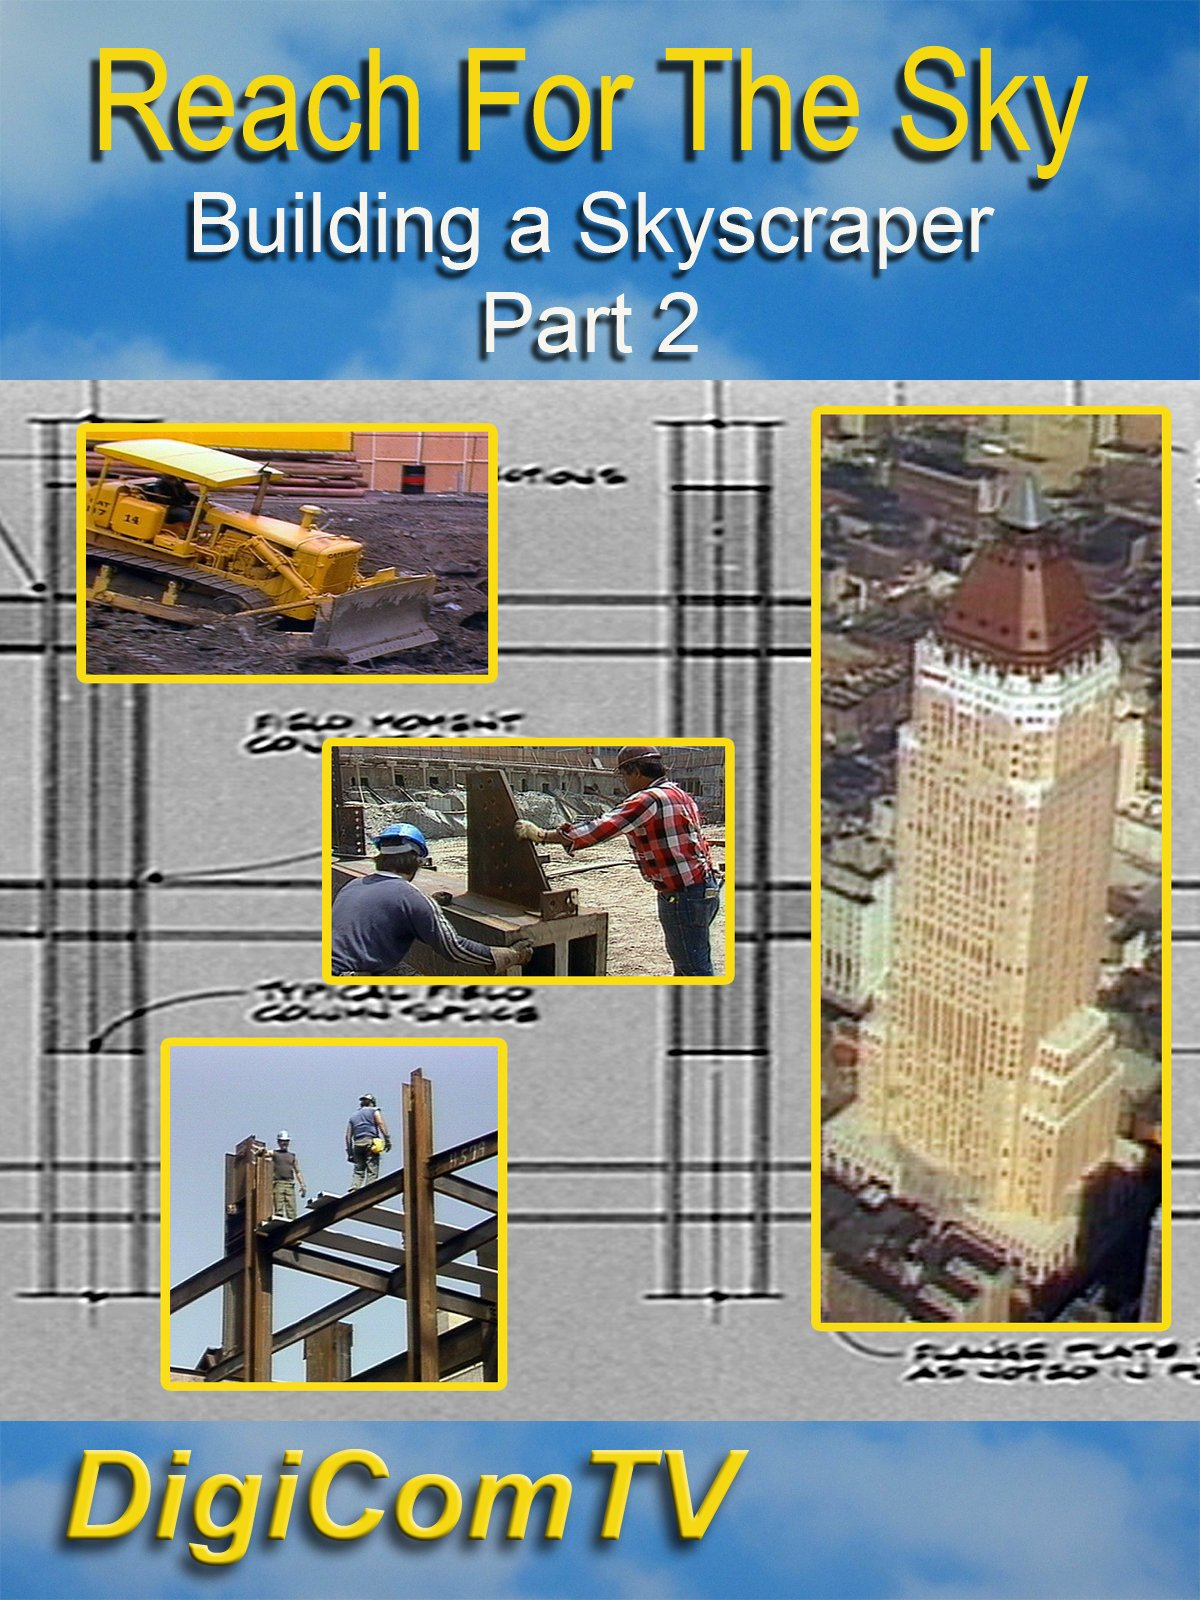 Reach For The Sky - Building a Skyscraper - Part 2